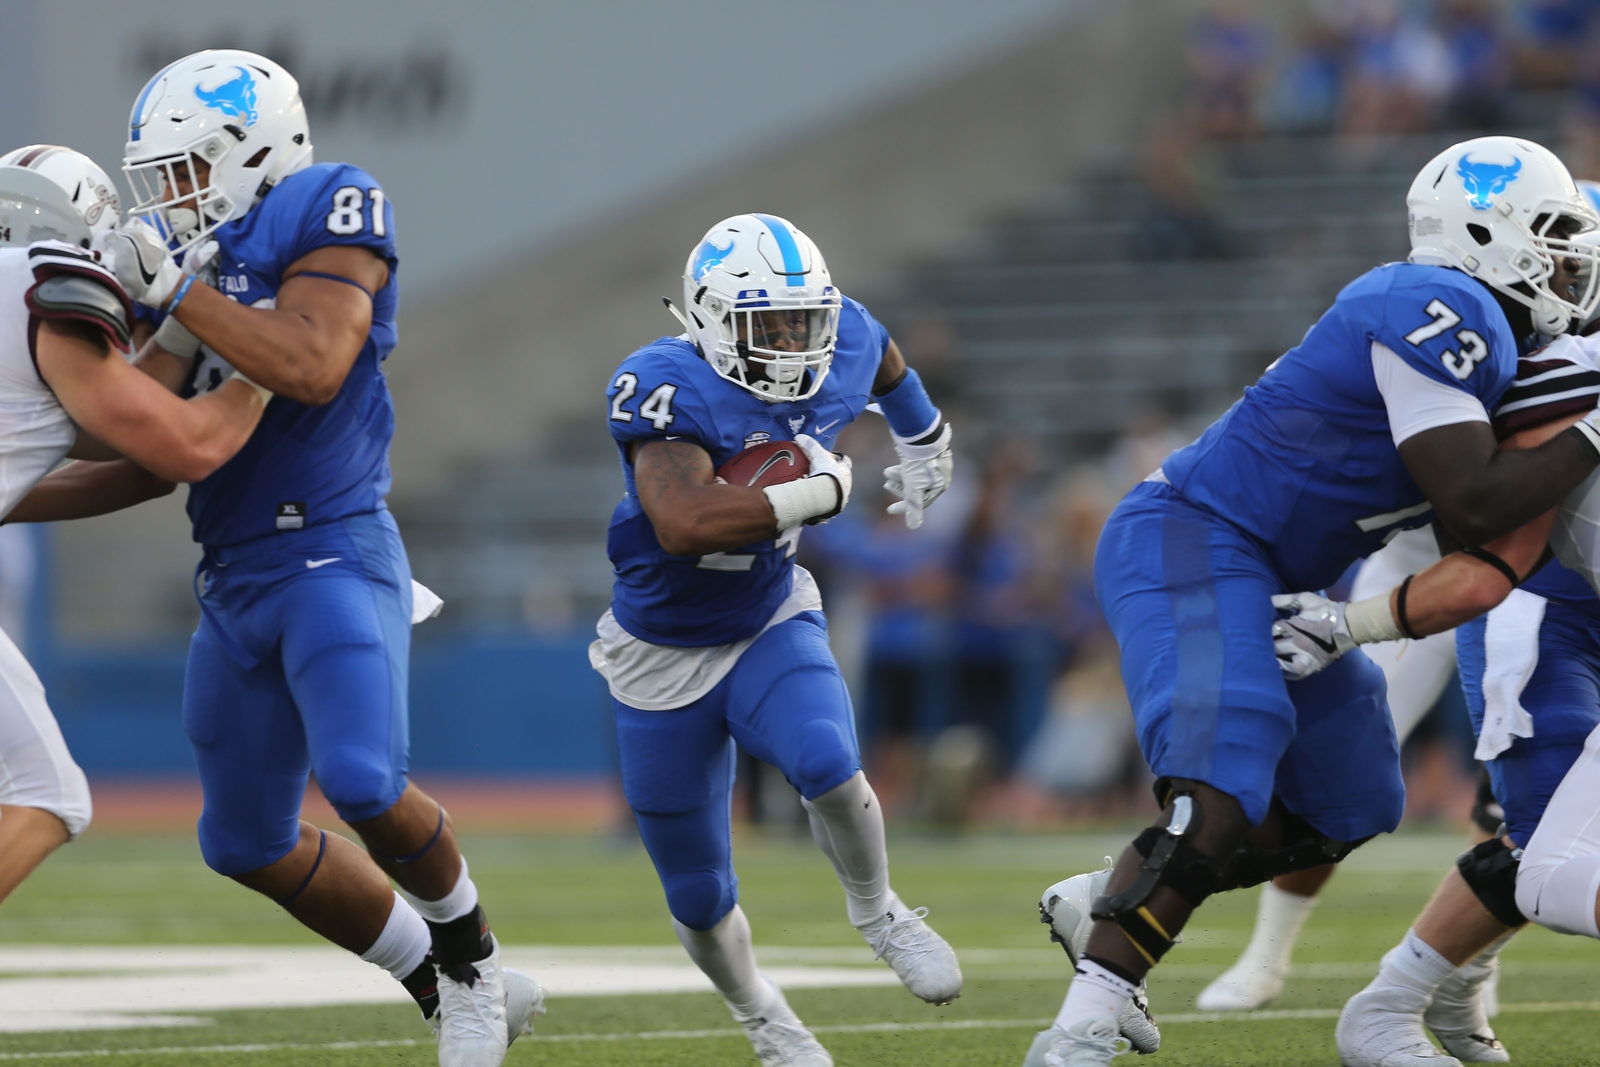 UB running back Johnathan Hawkins (24) finds room to run against Colgate.